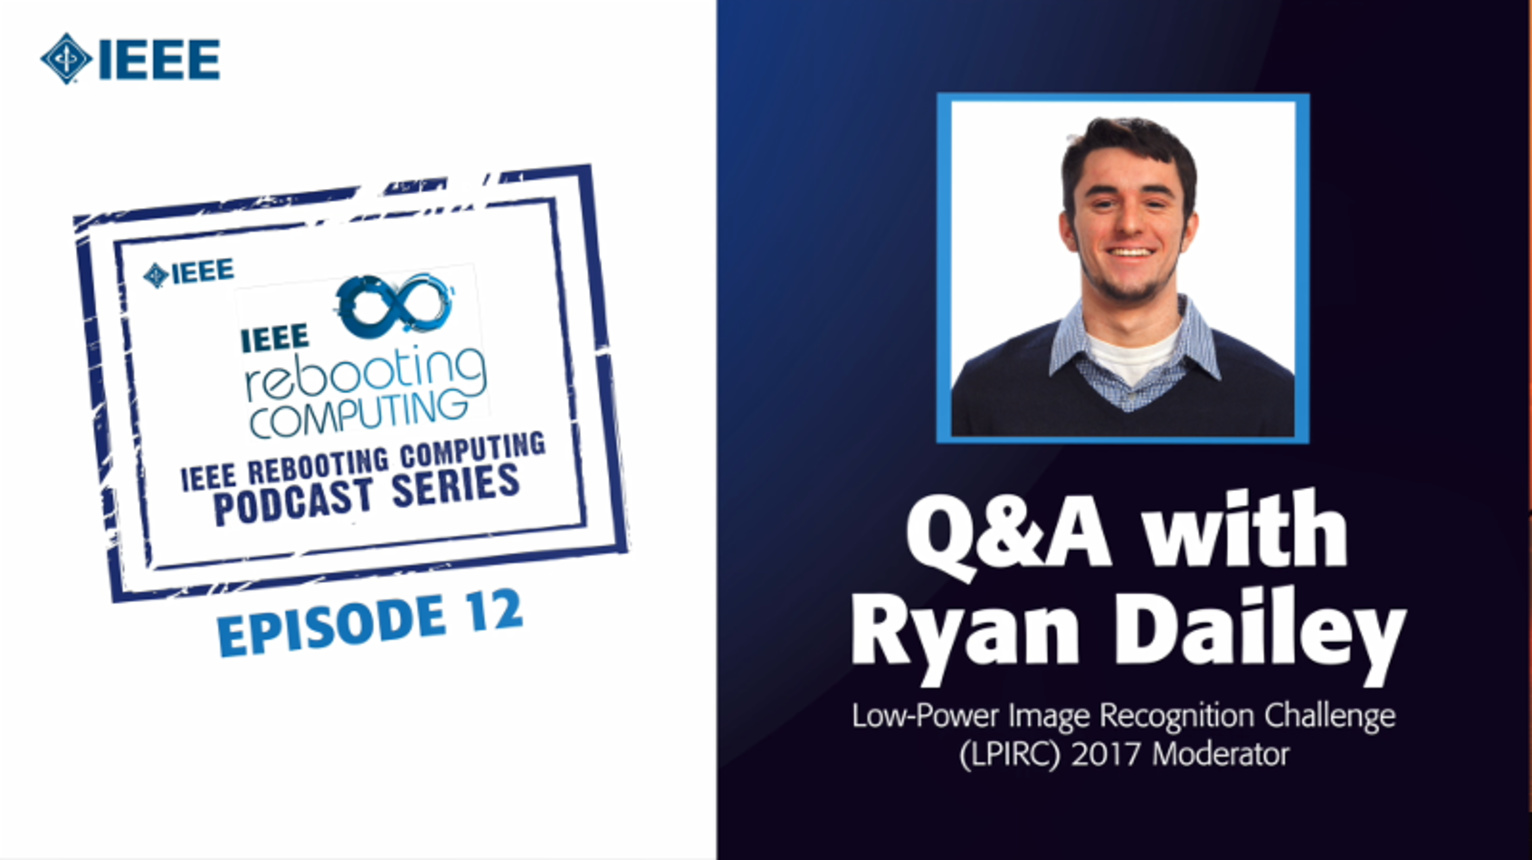 Q&A with Ryan Dailey: IEEE Rebooting Computing Podcast, Episode 12